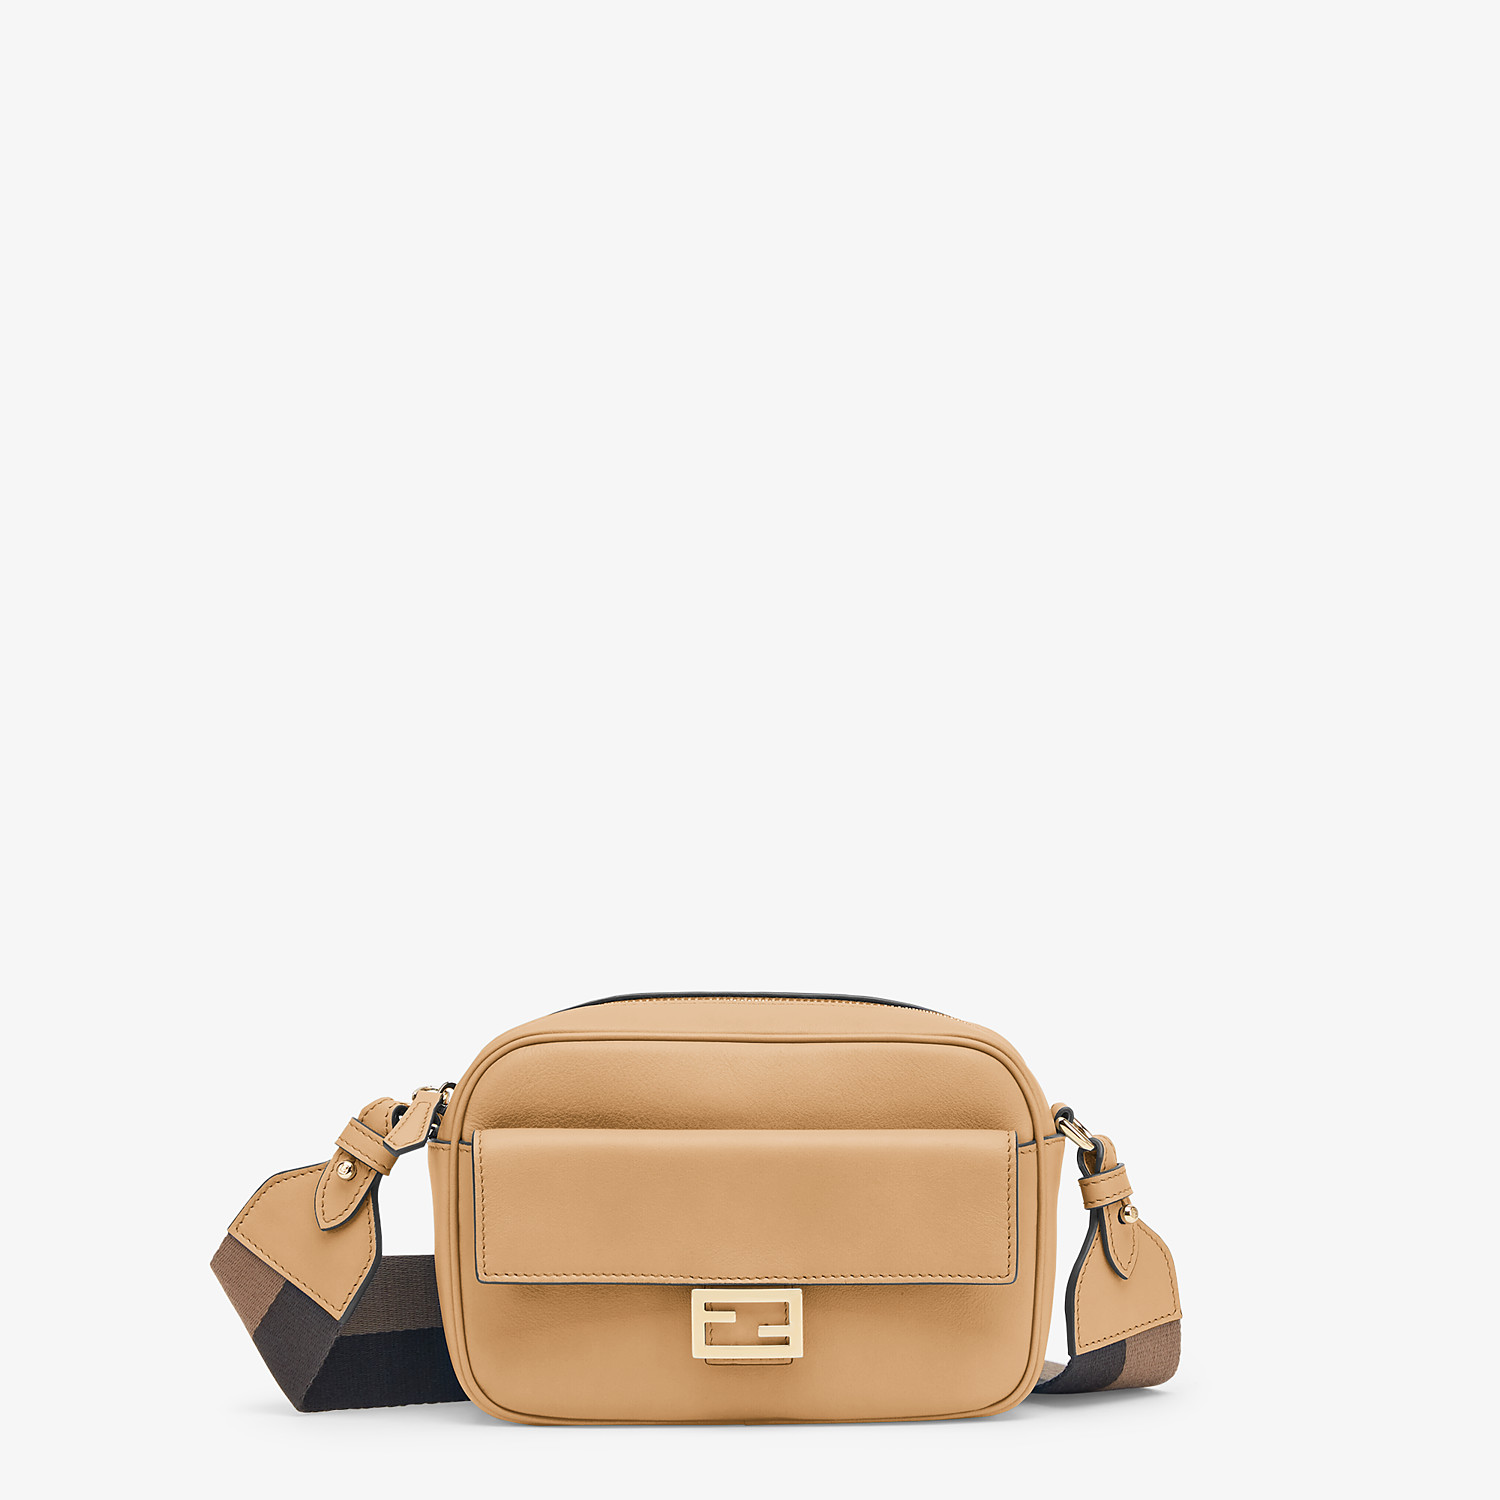 FENDI MINI FENDI CAM - Beige leather mini-bag - view 1 detail